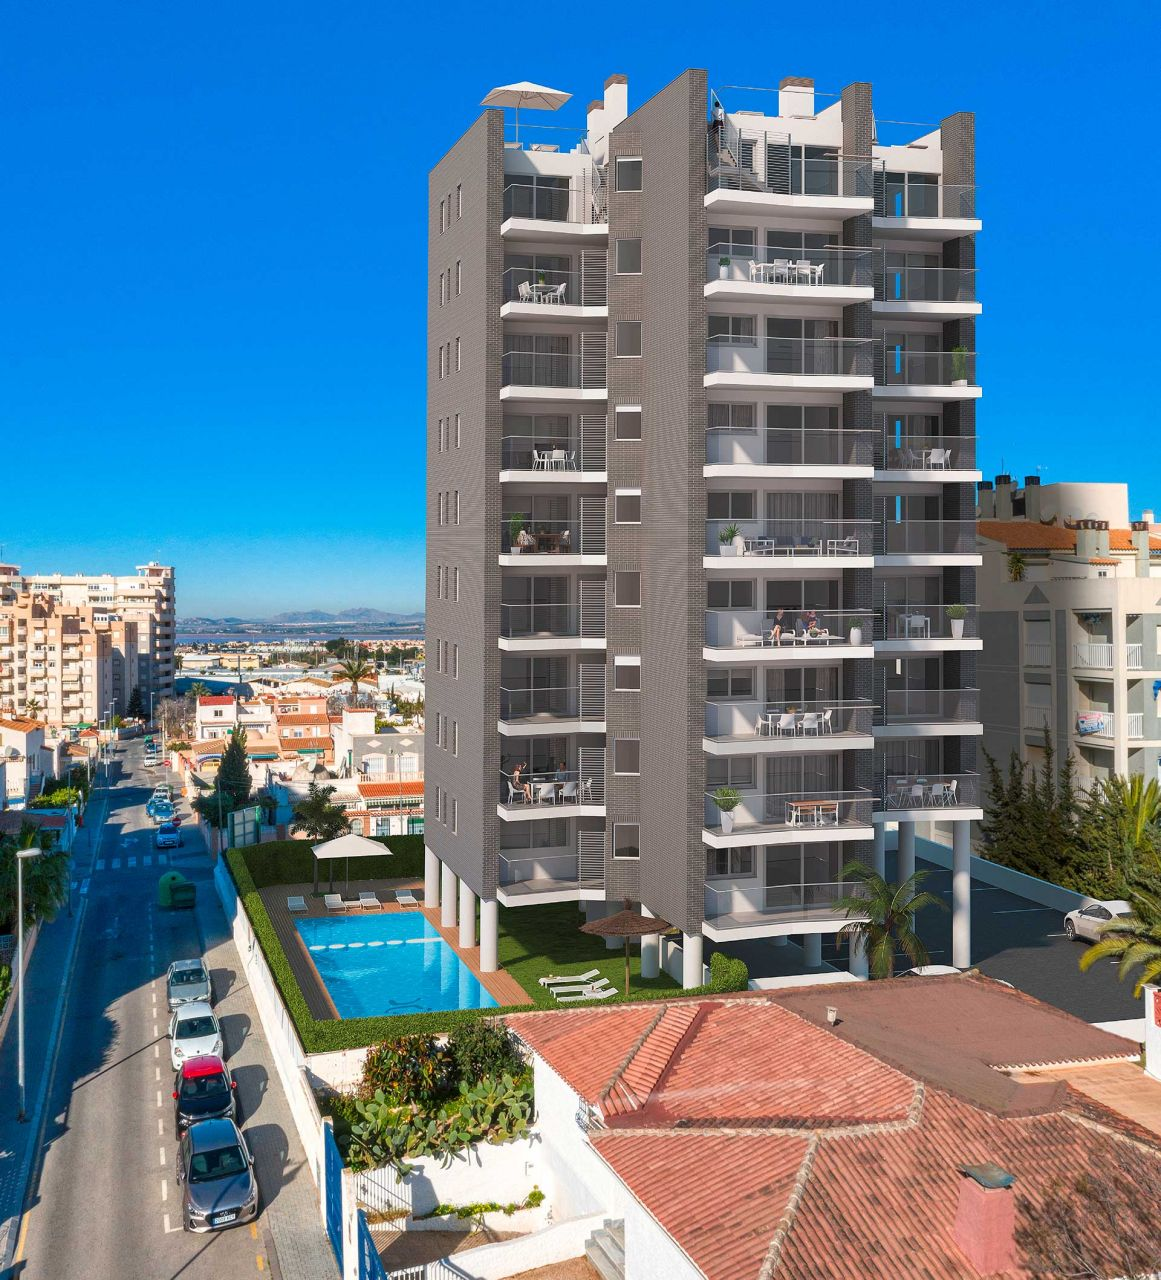 Apartments in the center of Torrevieja 1